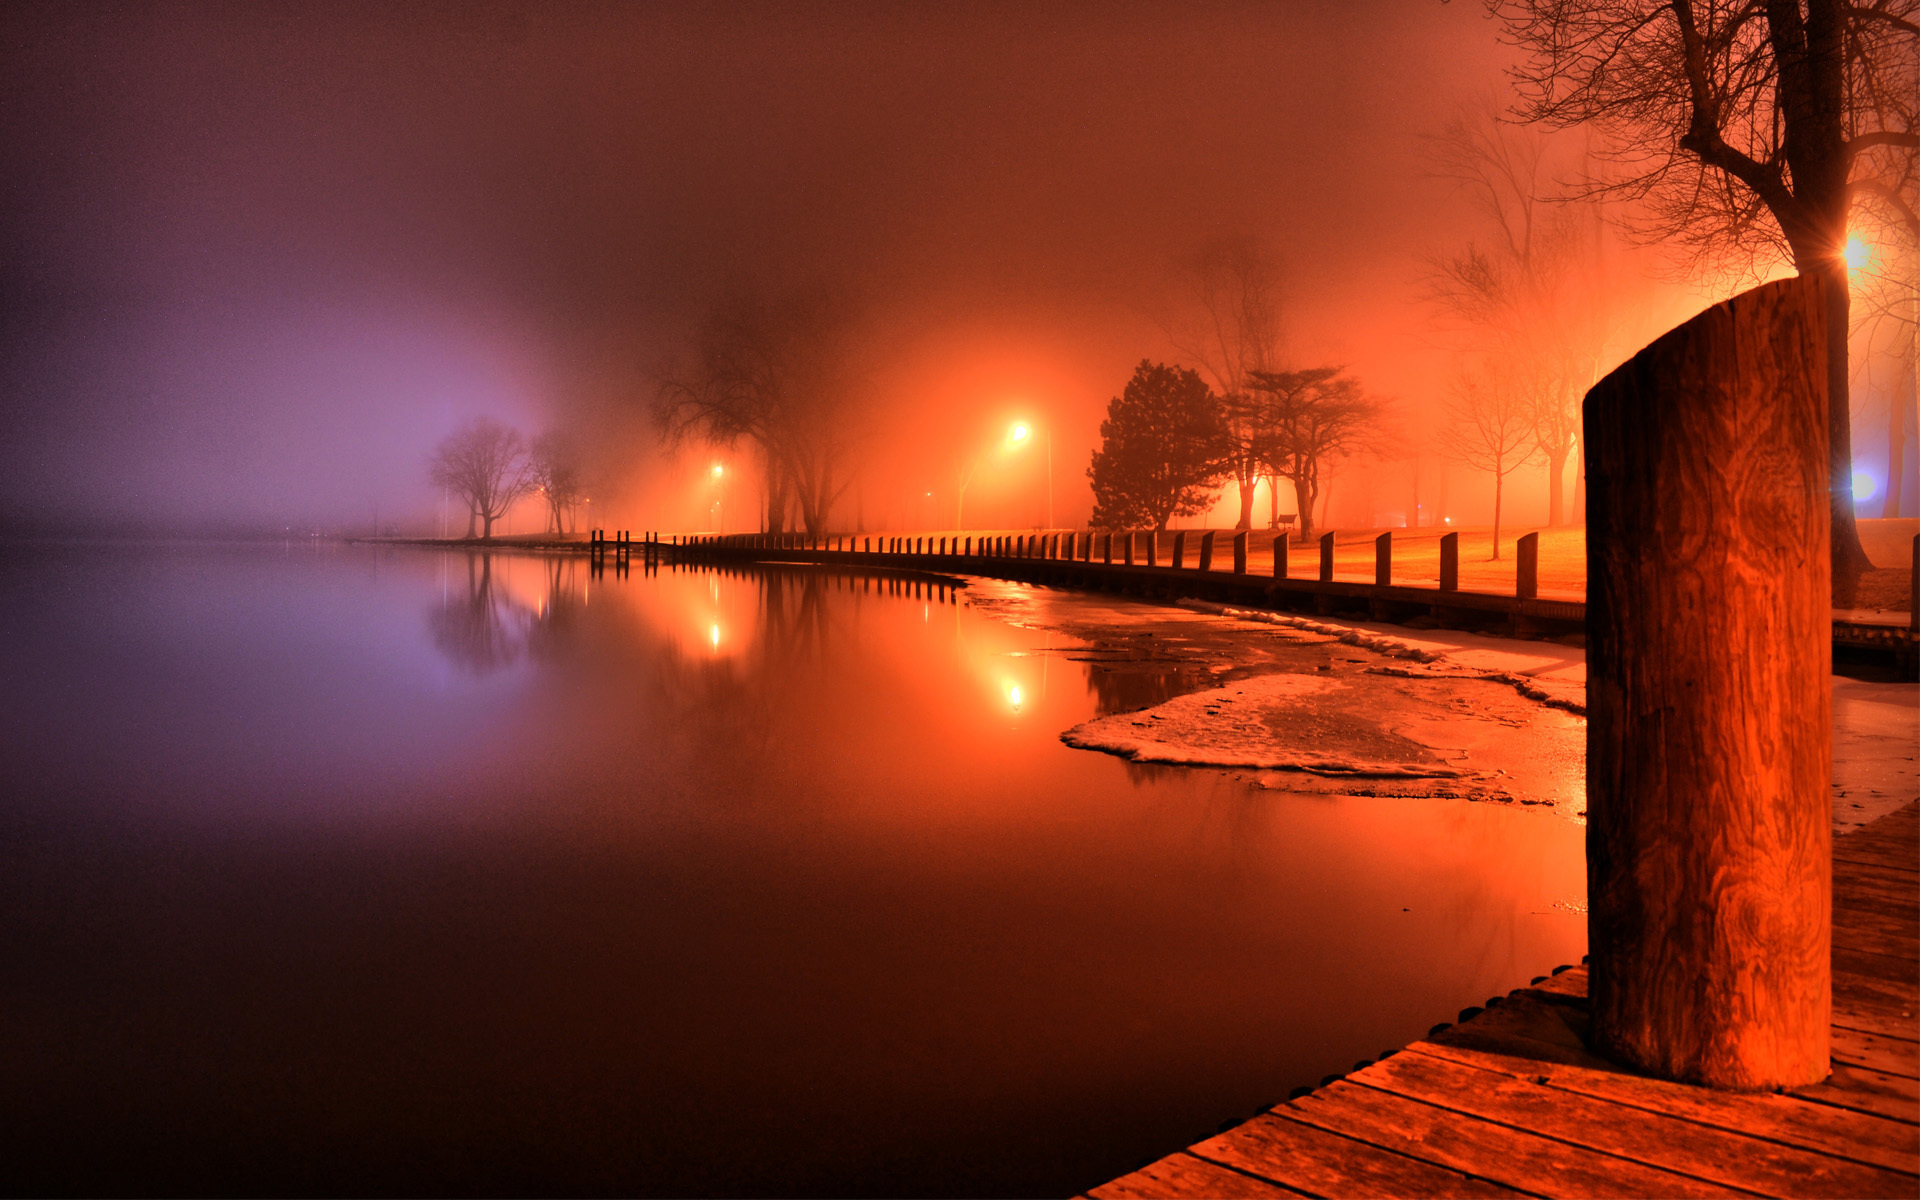 Amazing Reflection Photography Hd Wallpapers All Hd Wallpapers